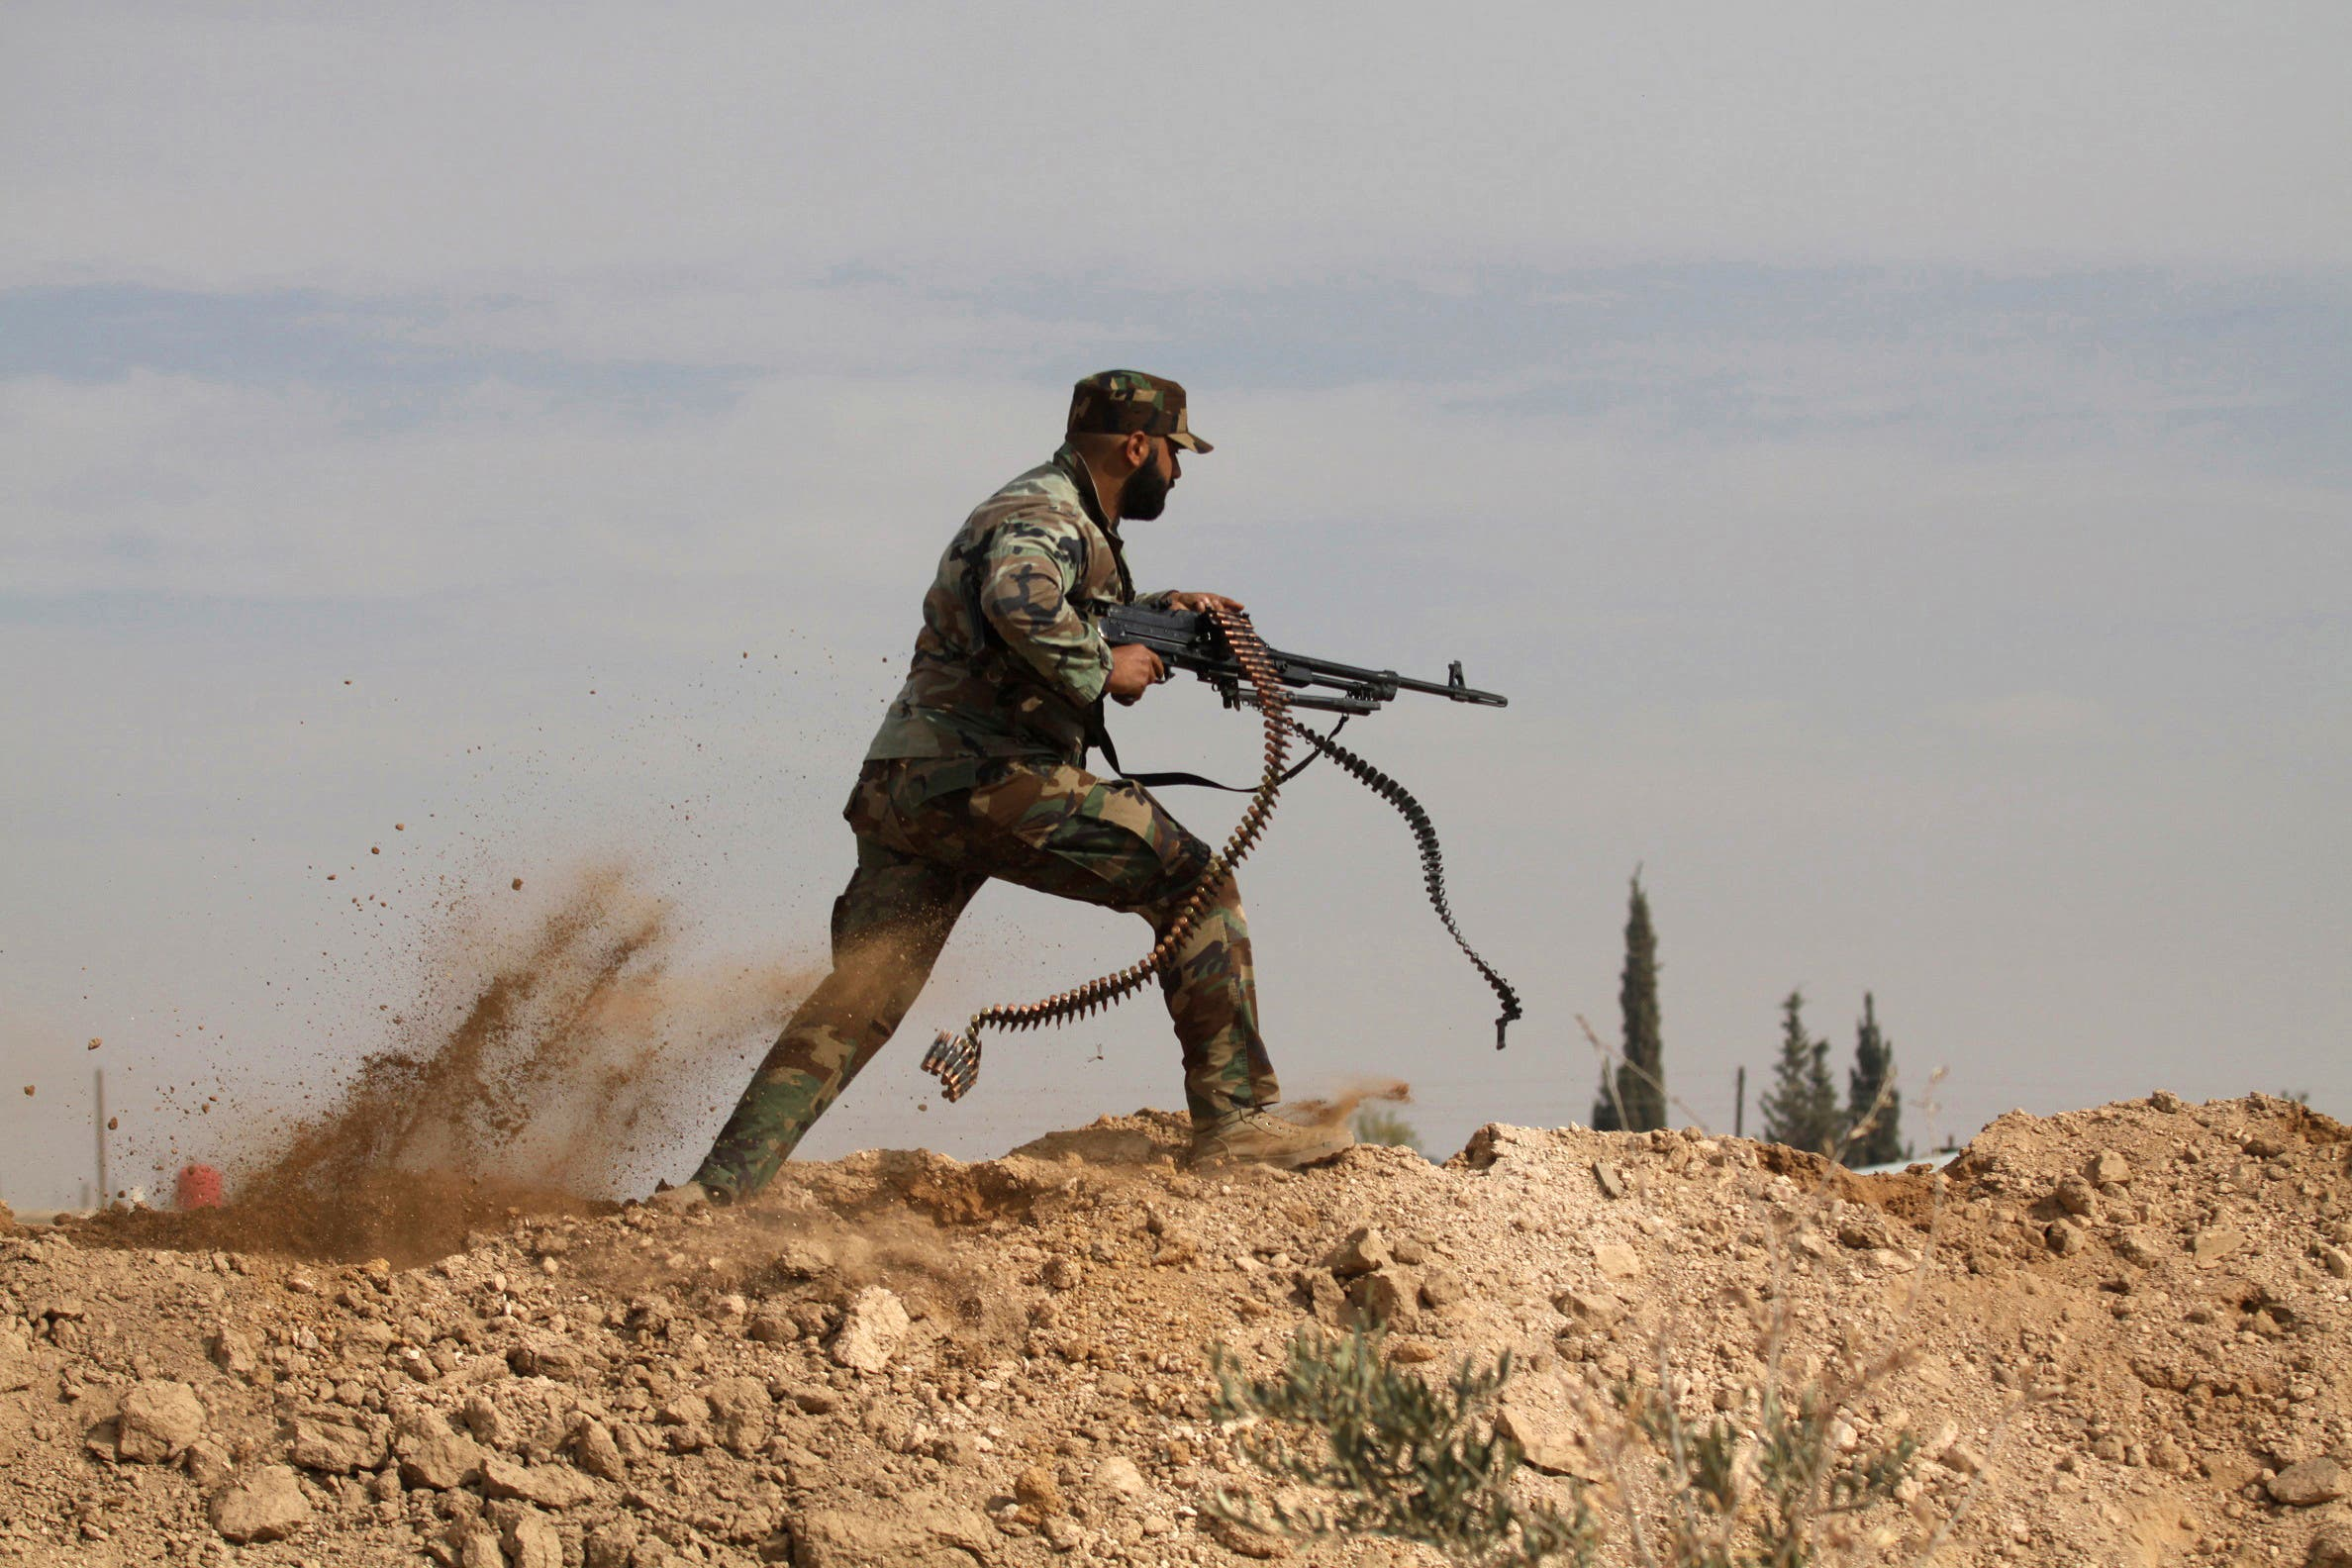 A Shia fighter clashes with members of the Free Syrian Army in the town of Hatita, in the countryside of Damascus, Syria on Nov. 22, 2013. (File photo: AP)